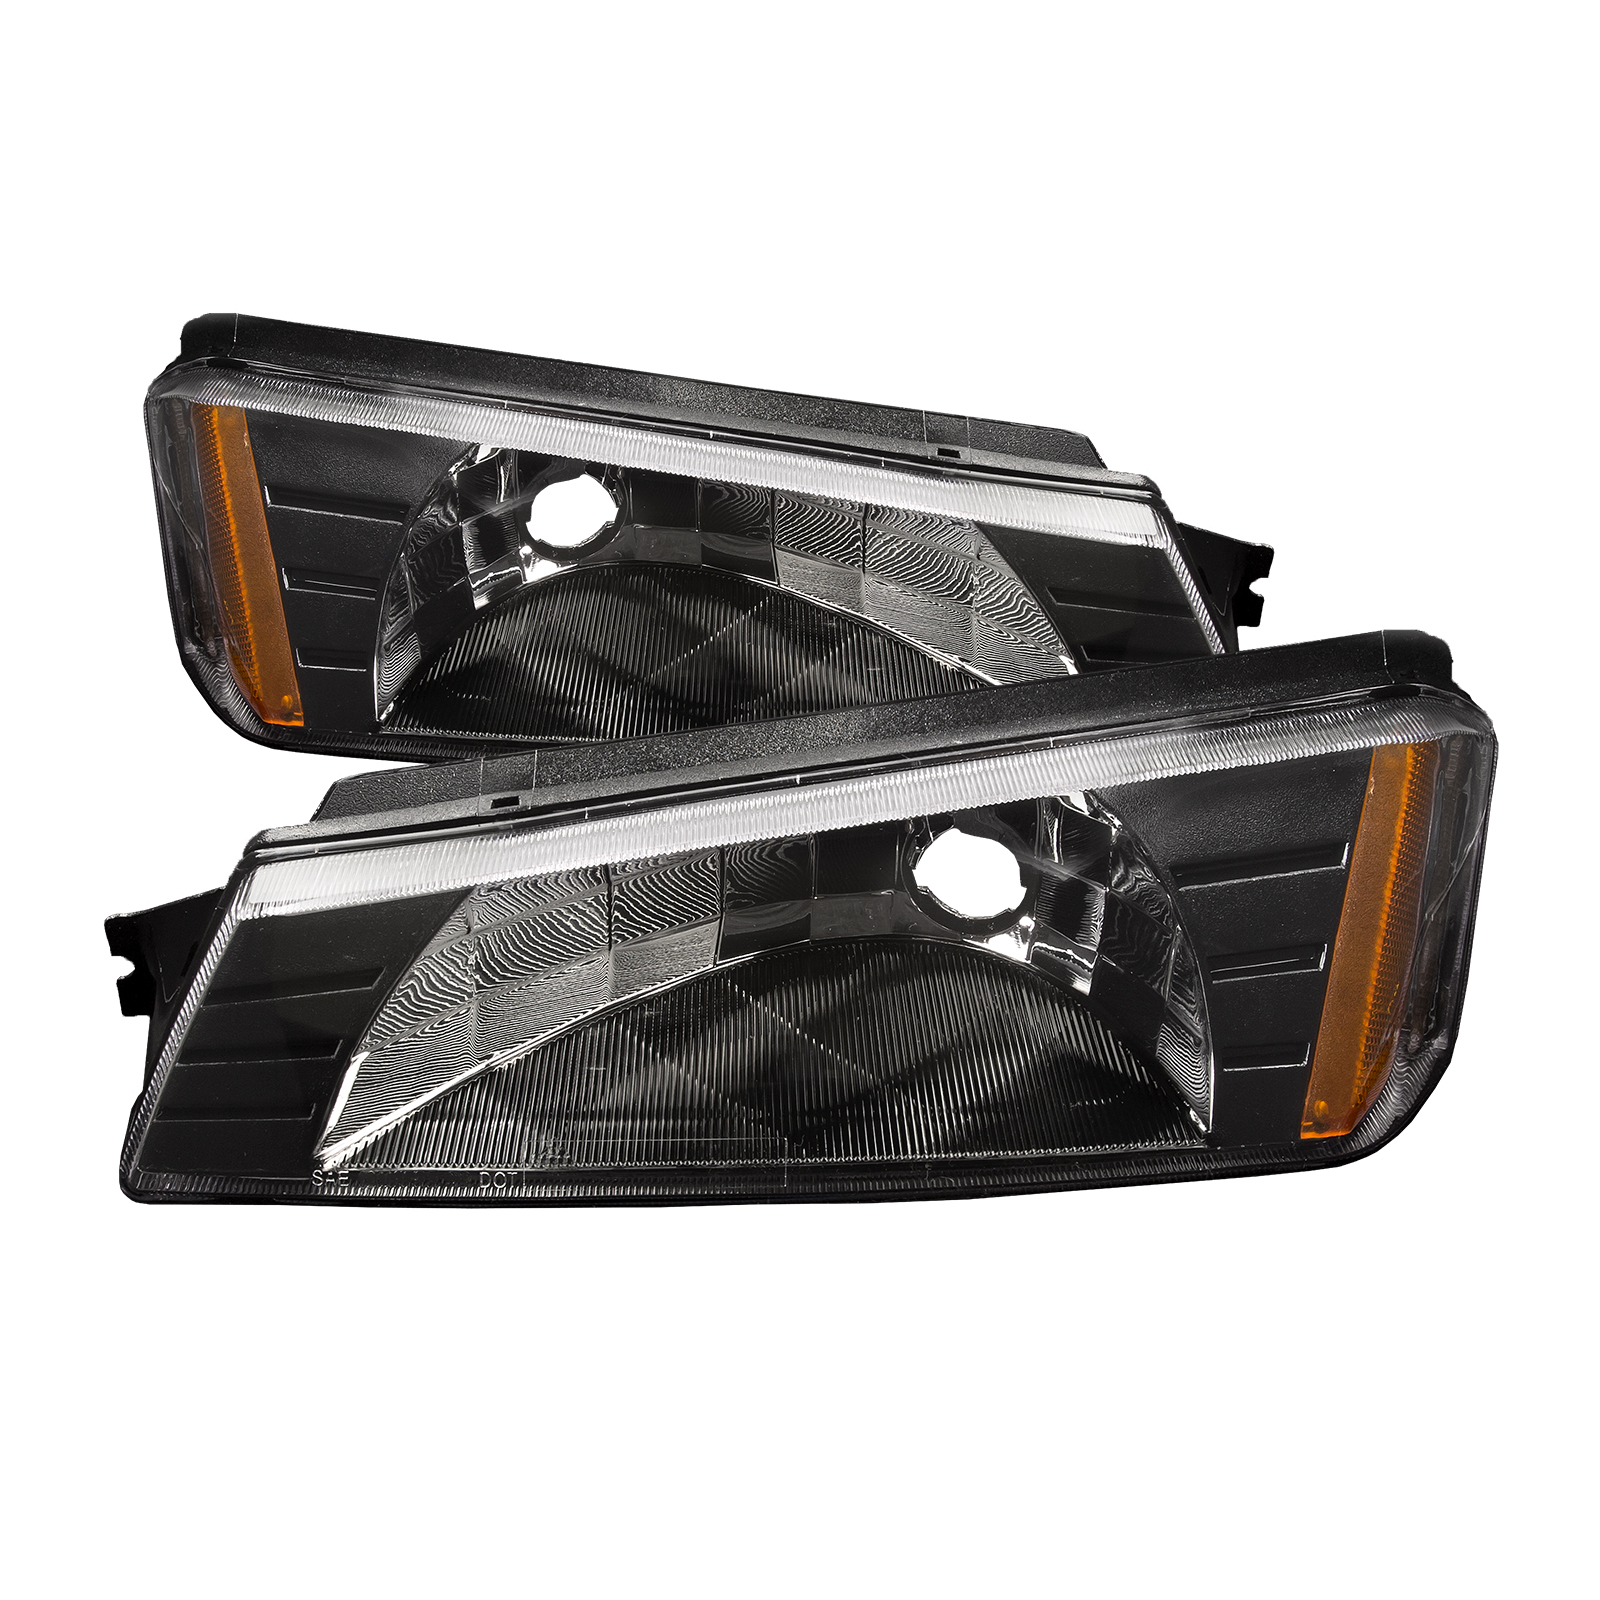 2002 2006 chevy avalanche park signal light set pair w body cladding ebay. Black Bedroom Furniture Sets. Home Design Ideas